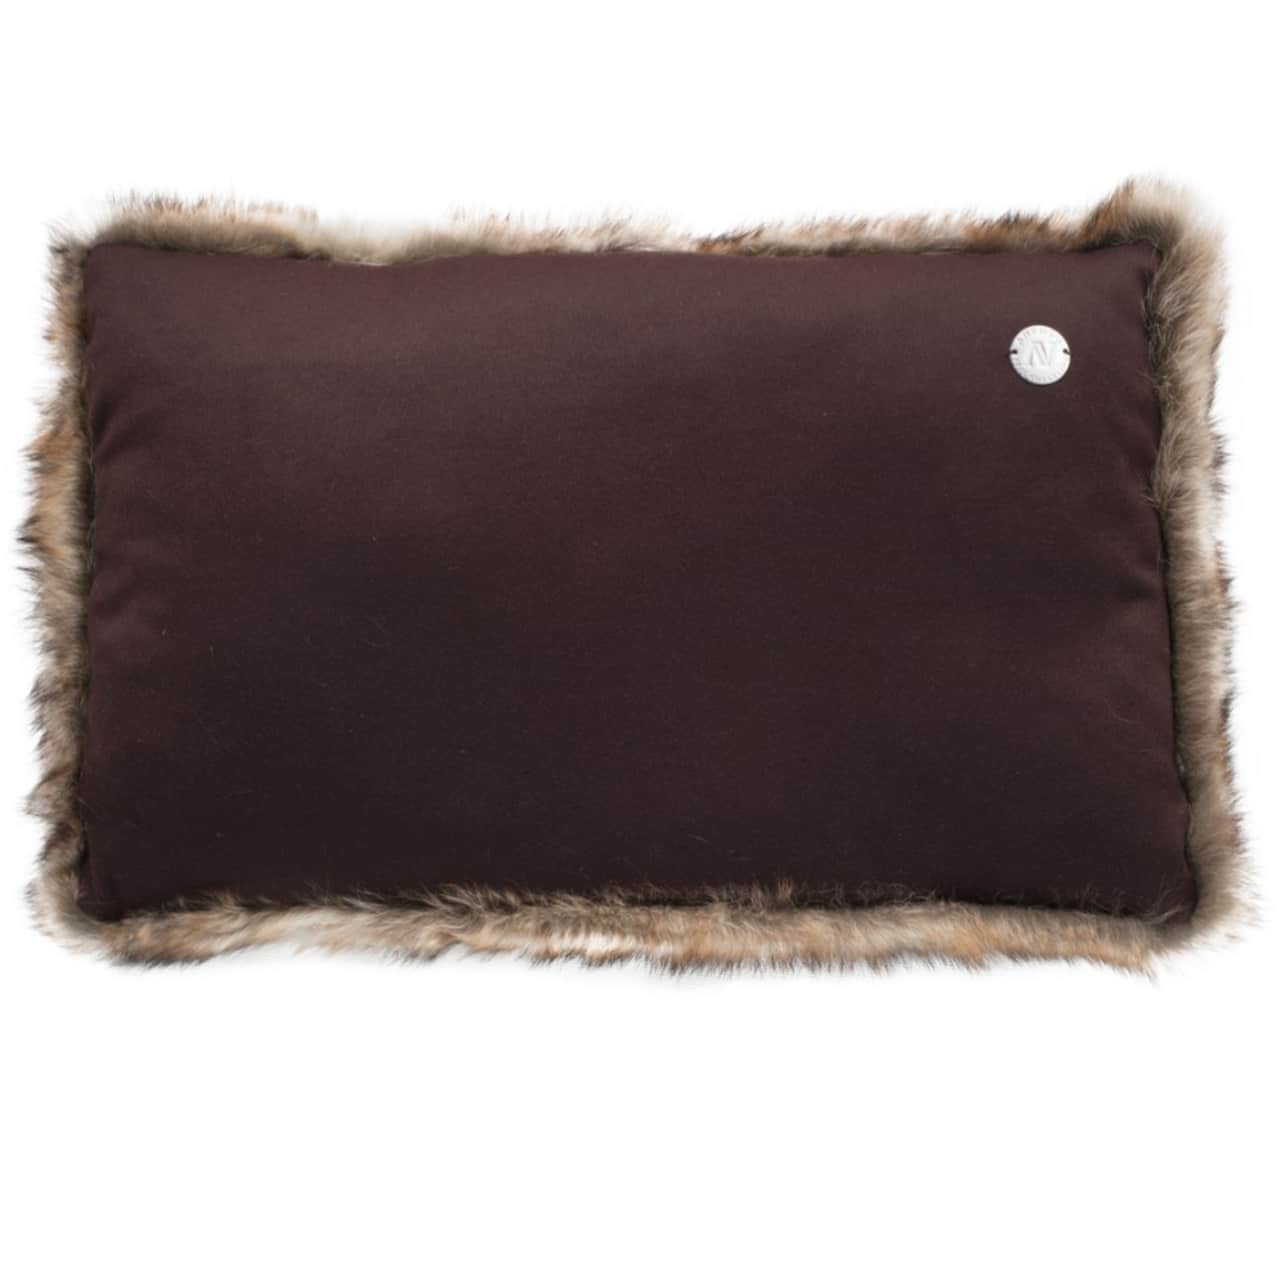 NEW-Shearling Pillow- Extra- 35x55cm (SPEXTBR3555) arka - ANVOGG FEEL SHEARLING | ANVOGG